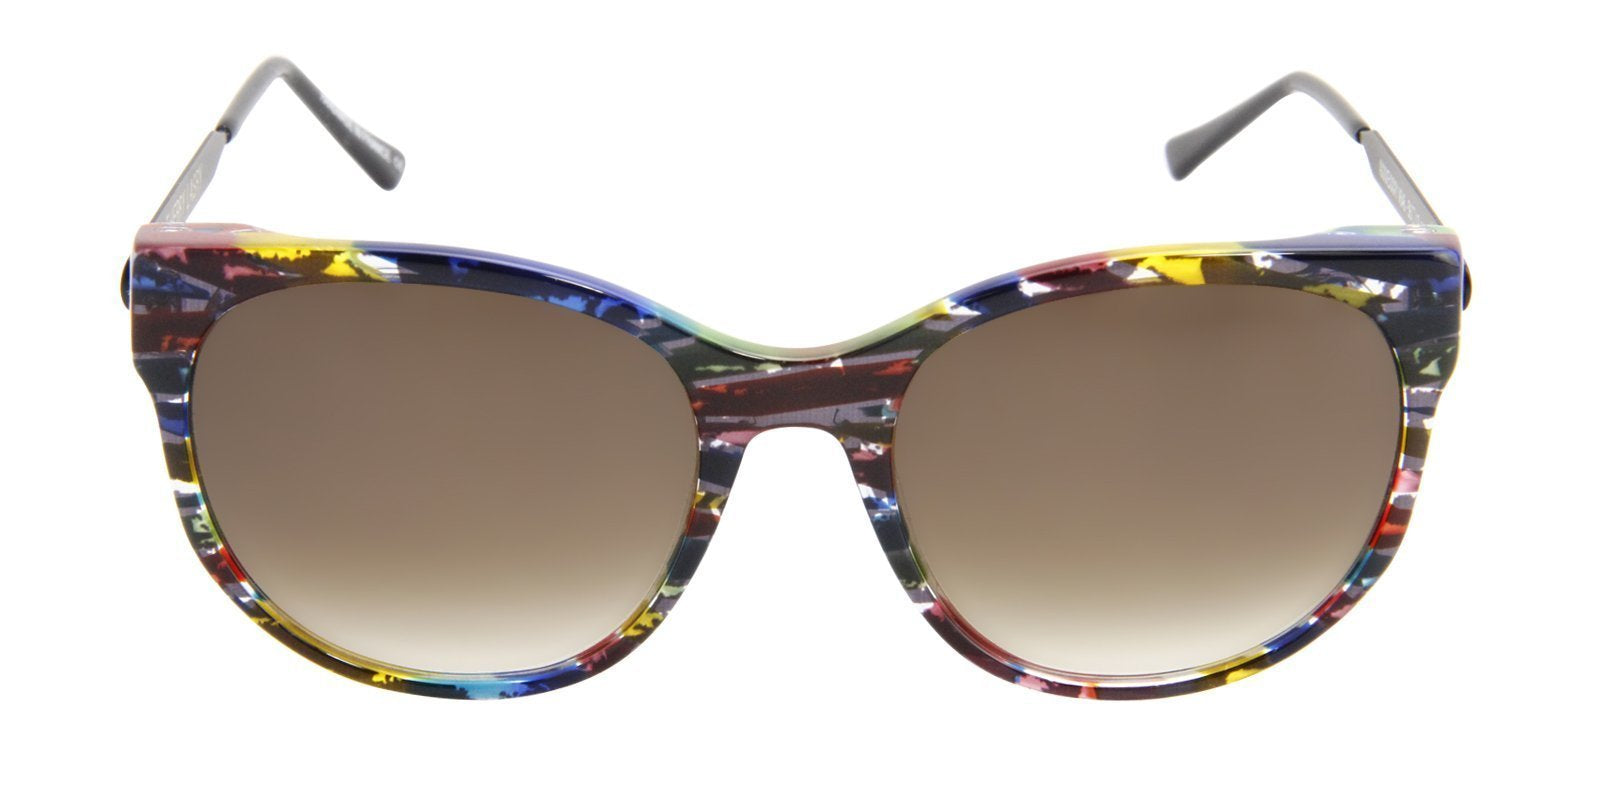 Thierry Lasry - Axxxexxxy Blue/Red/Green Oval Women Sunglasses - 56mm-Sunglasses-Designer Eyes